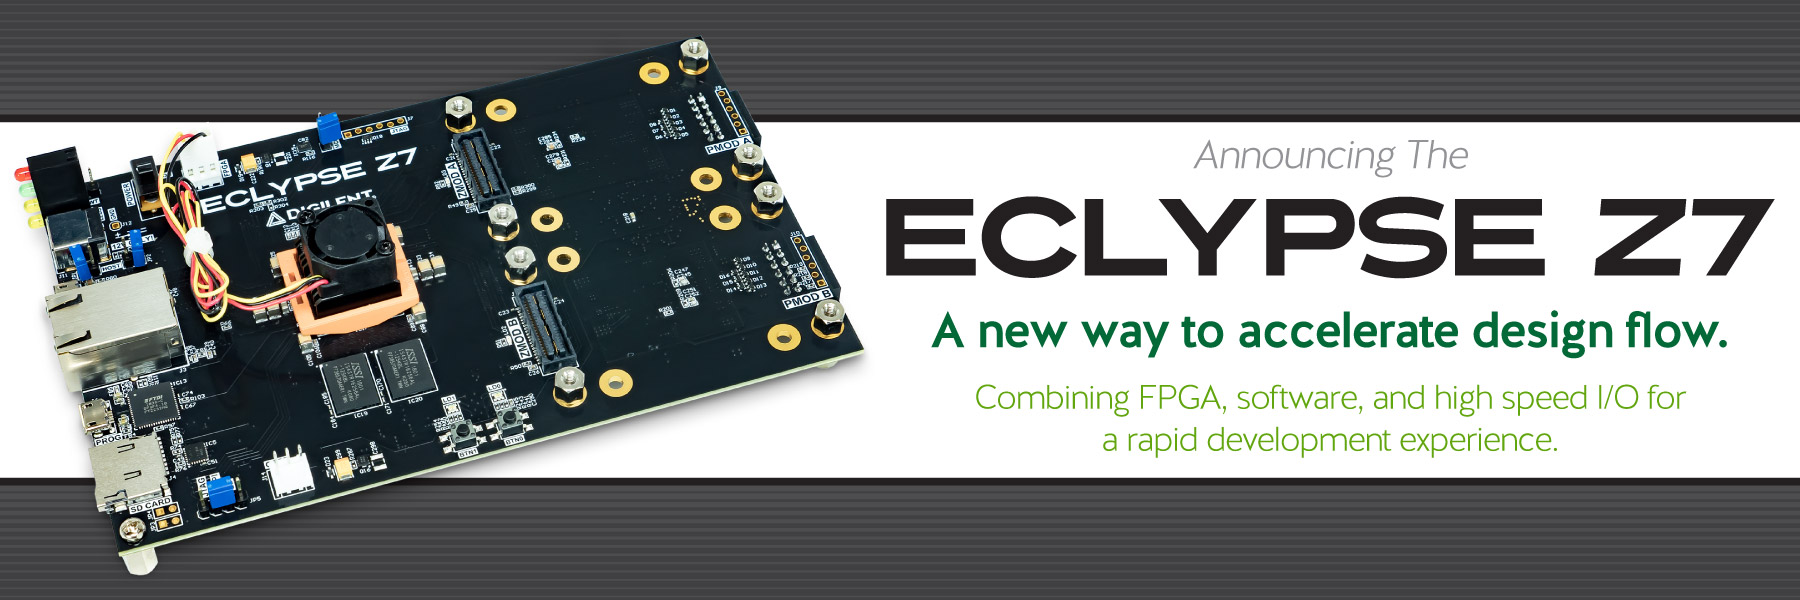 Banner announcing the release of the new Eclypse Z7 board, available now!